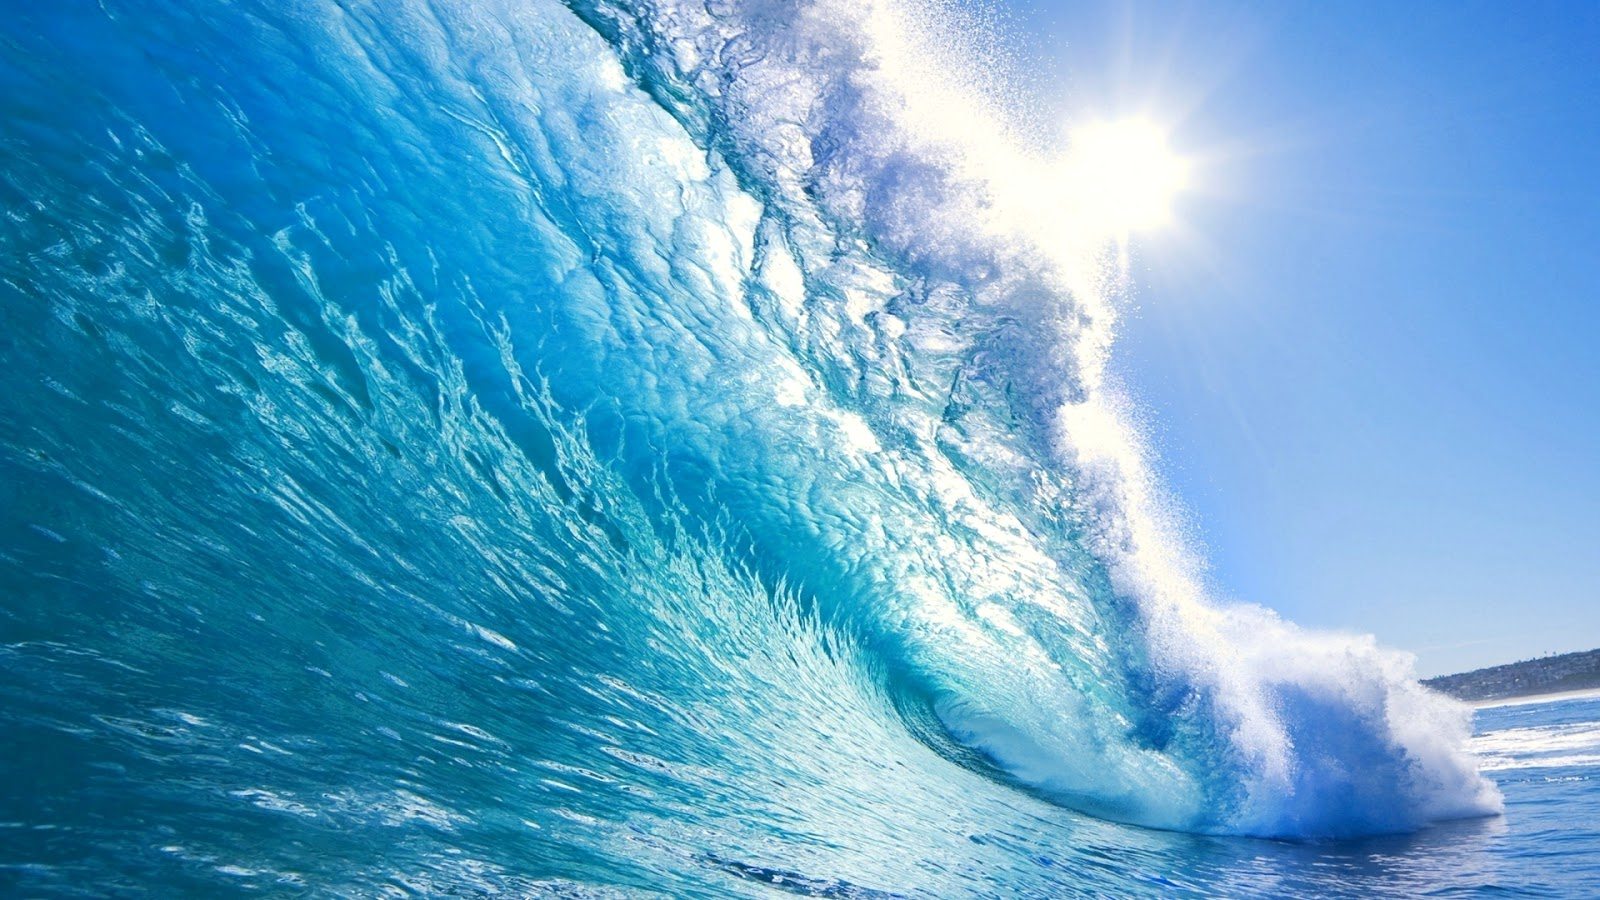 Beautiful Wallpapers: water waves wallpaper